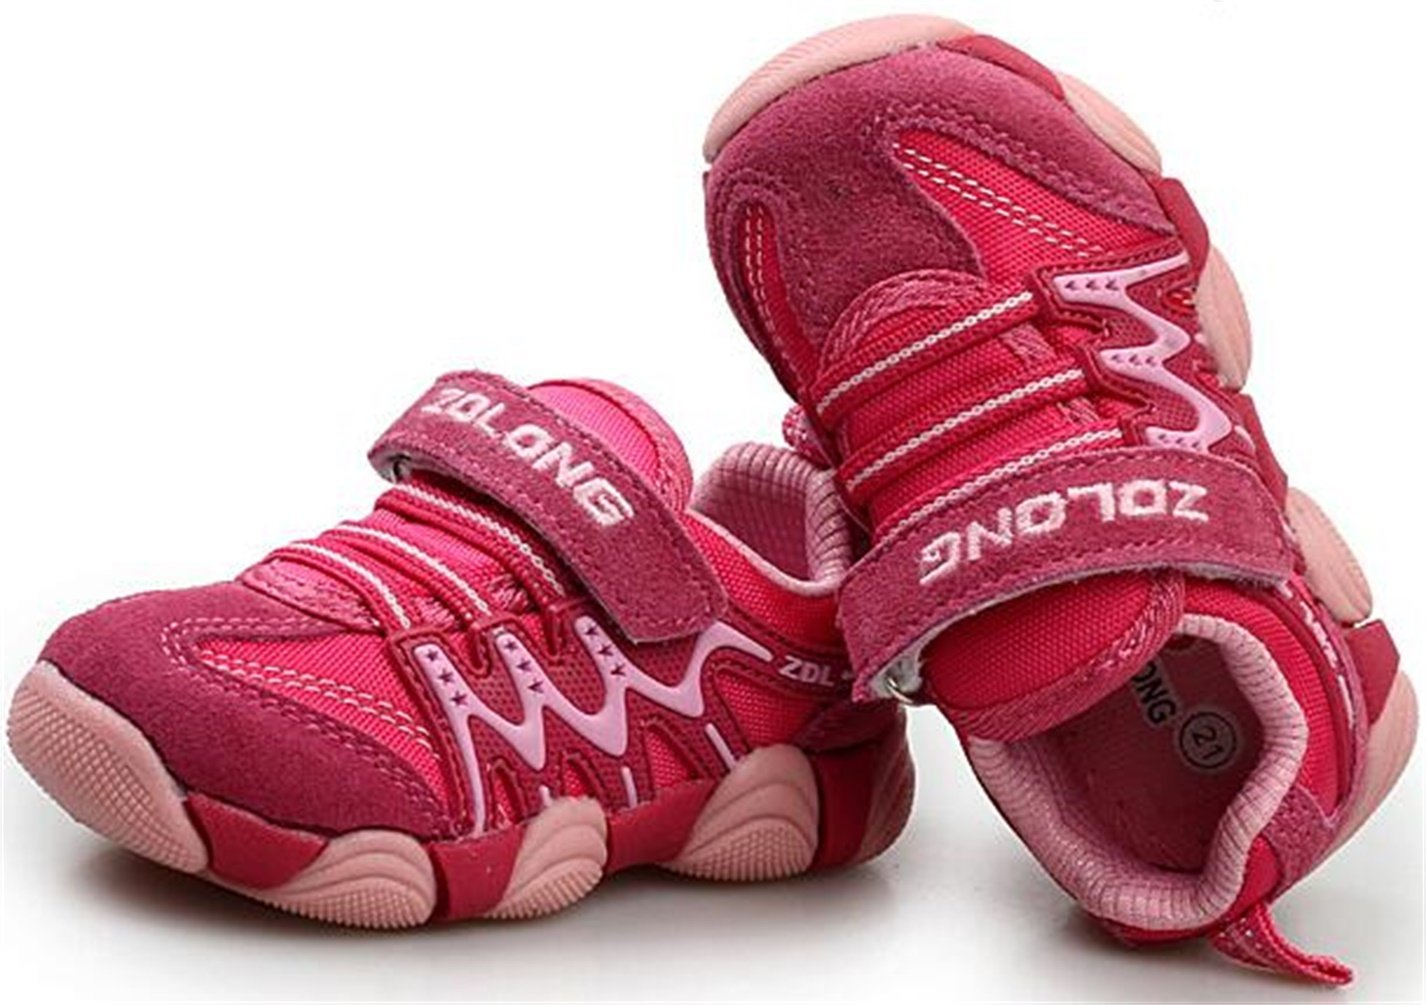 PPXID Boy's Girl's Athletic Lace up Casual Sneaker Running Shoes-Pink 11.5 US Size by PPXID (Image #3)